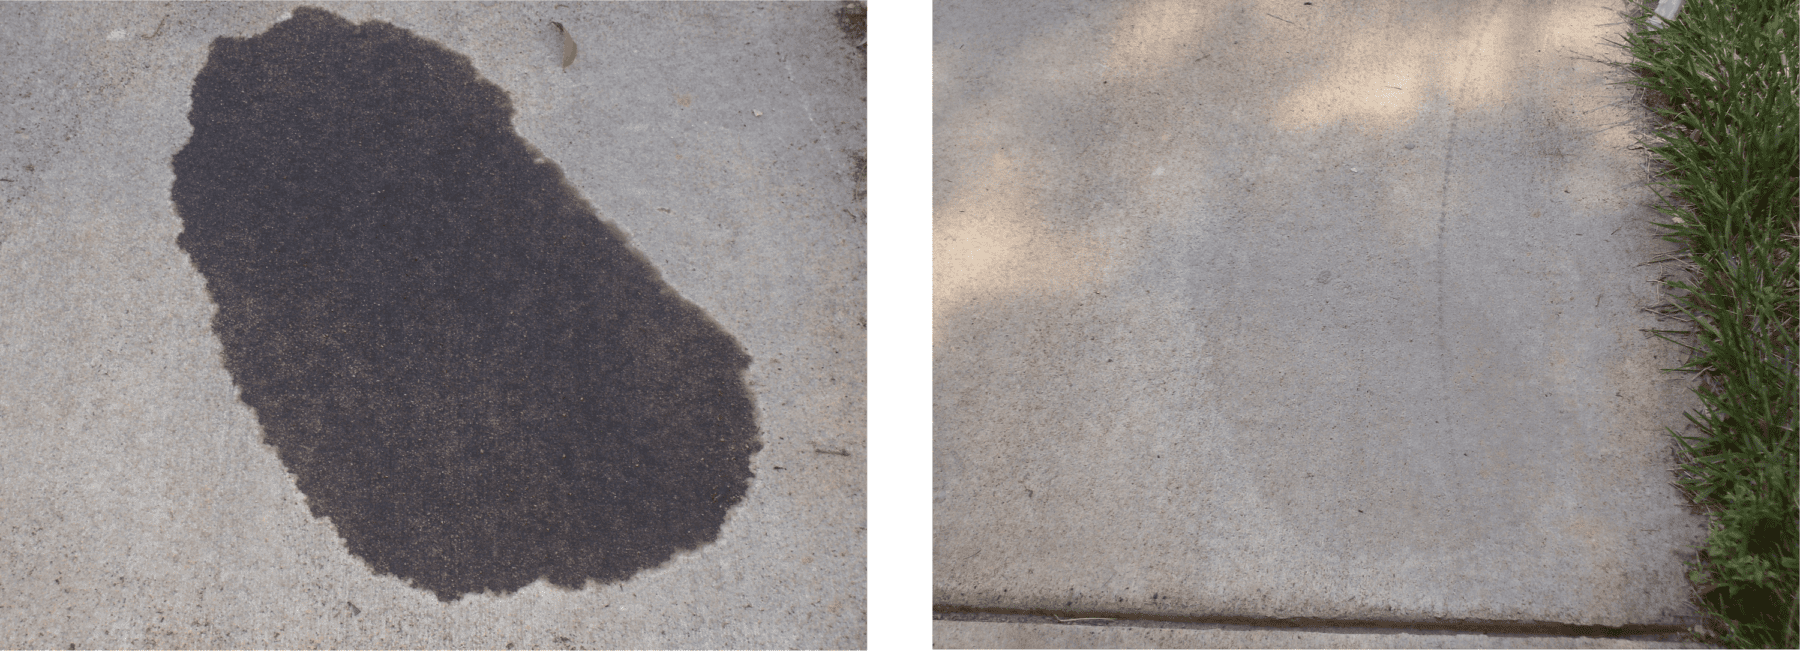 Driveway Oil Stain